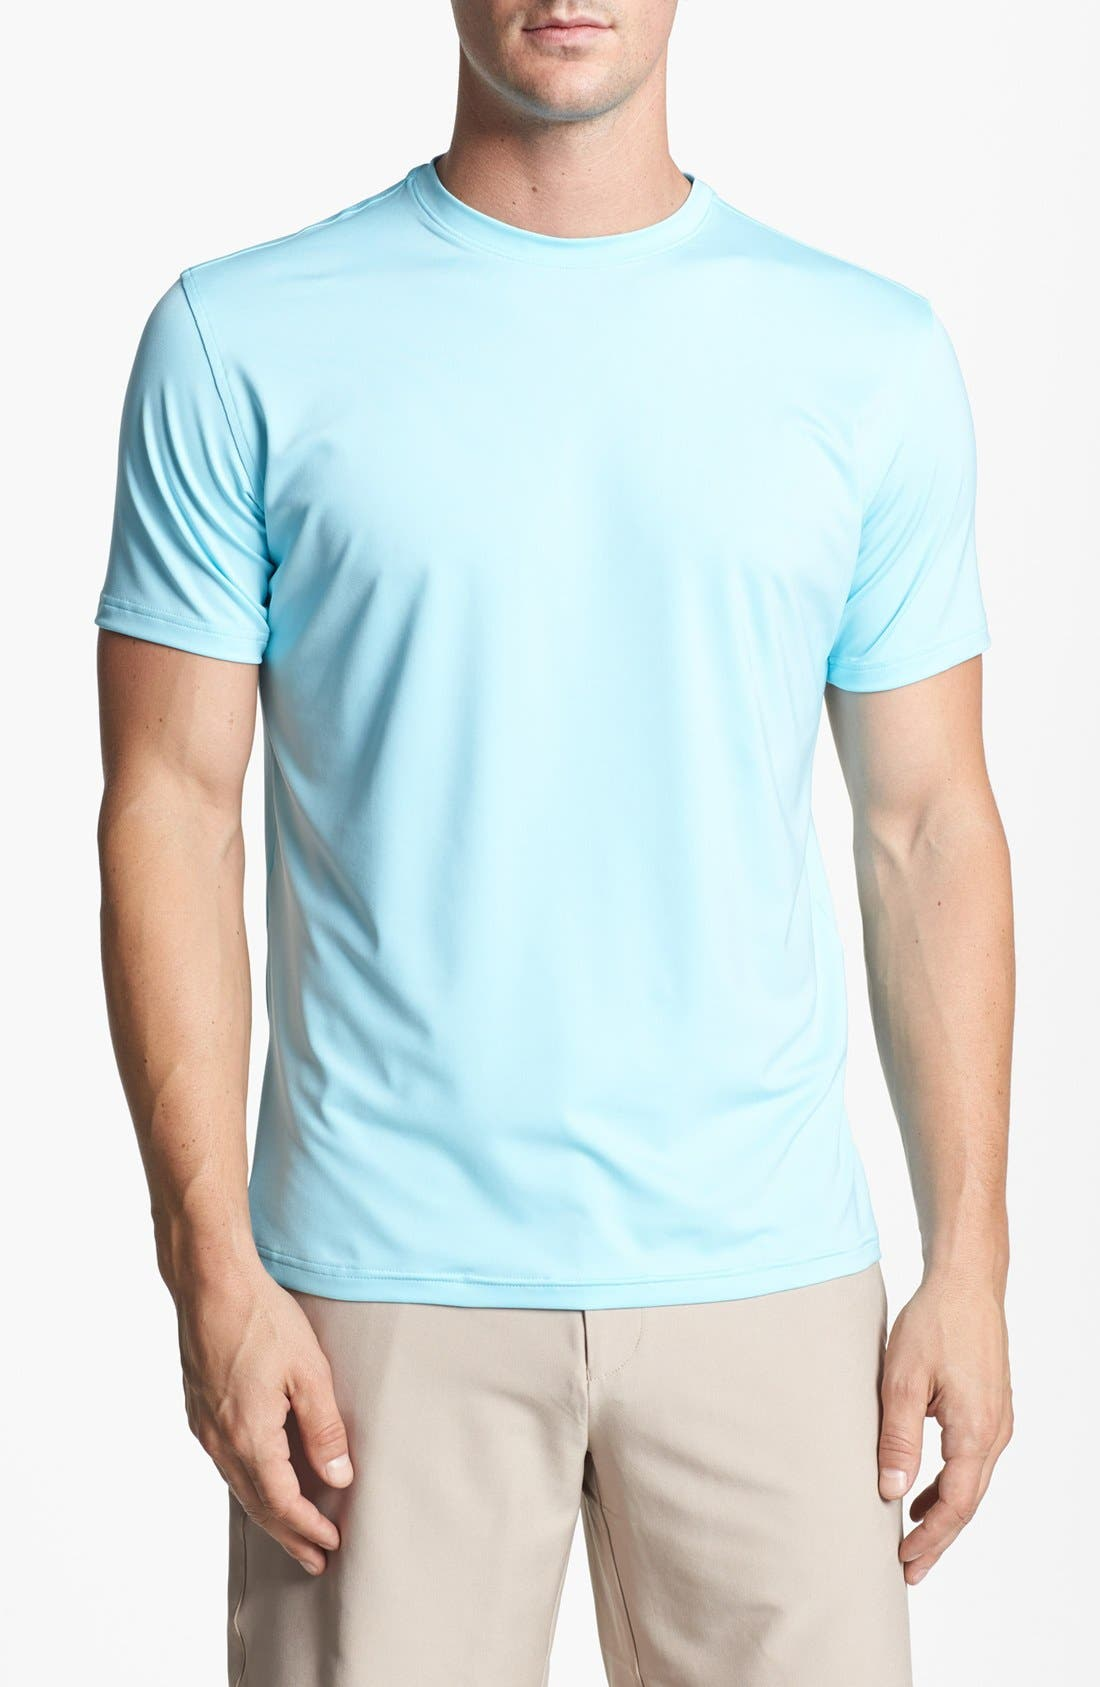 Alternate Image 1 Selected - Peter Millar 'Limerick' Stretch T-Shirt